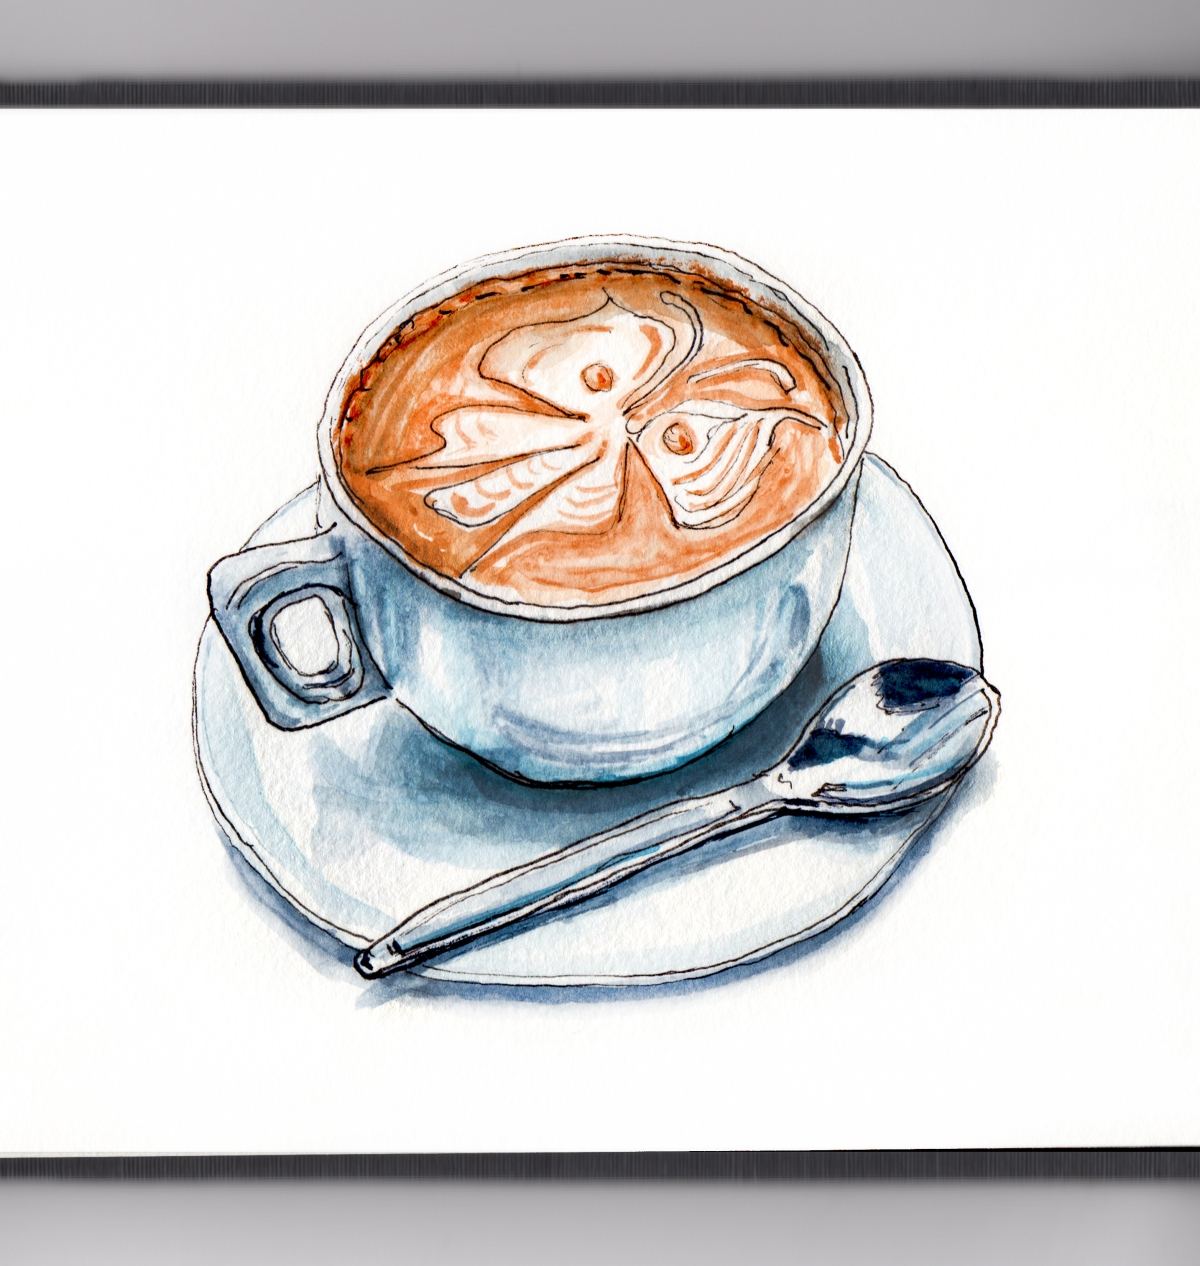 Day 1 - #WorldWatercolorGroup Cold Spring Day Cappuccino With Butterfly On Top And Spoon - #doodlewash